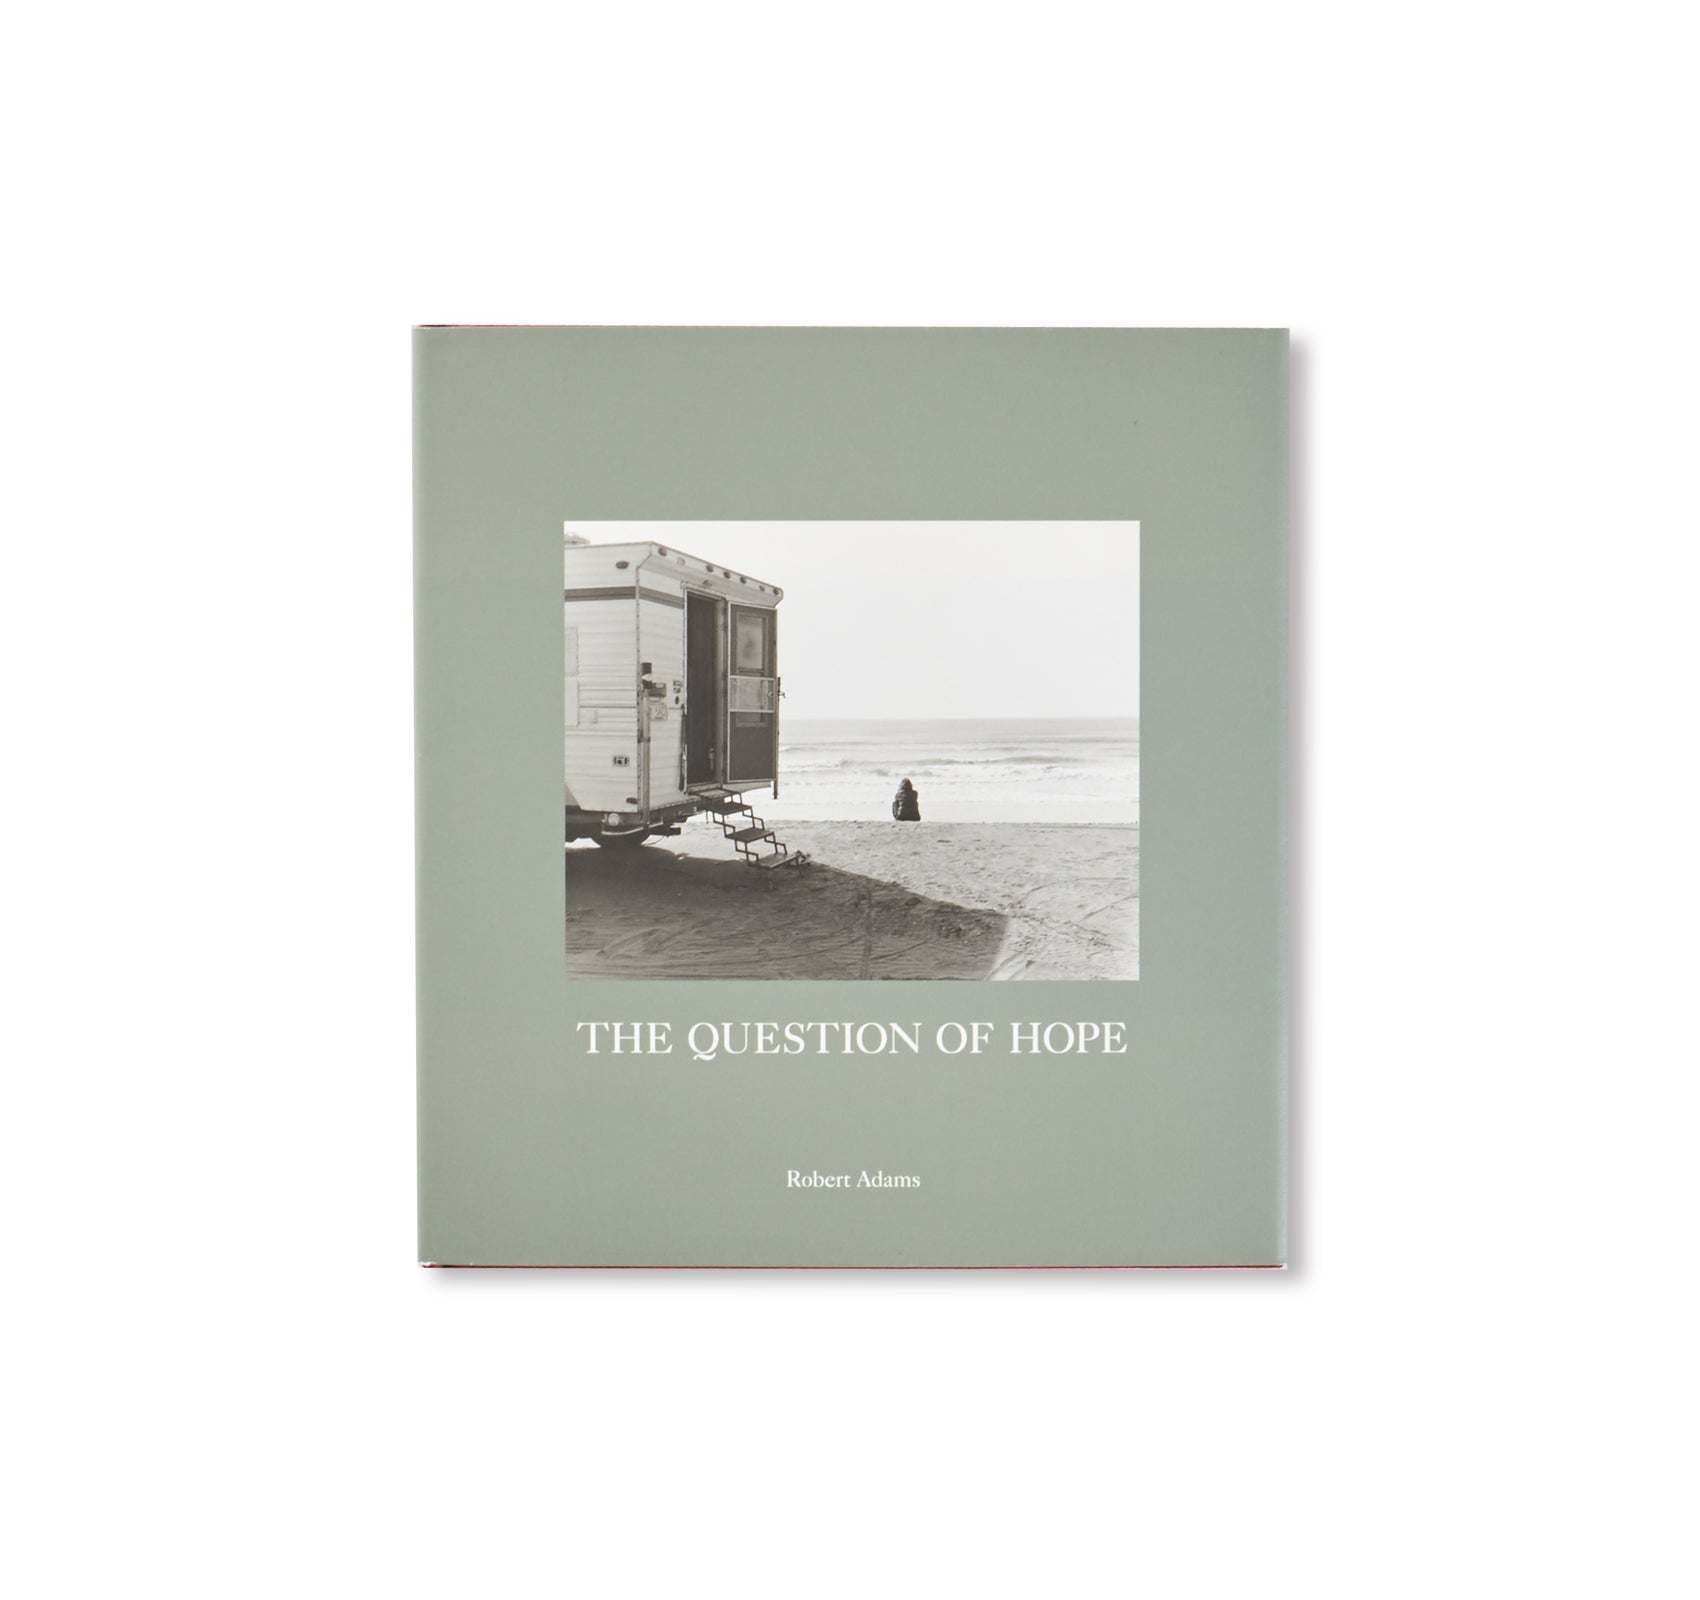 THE QUESTION OF HOPE by Robert Adams